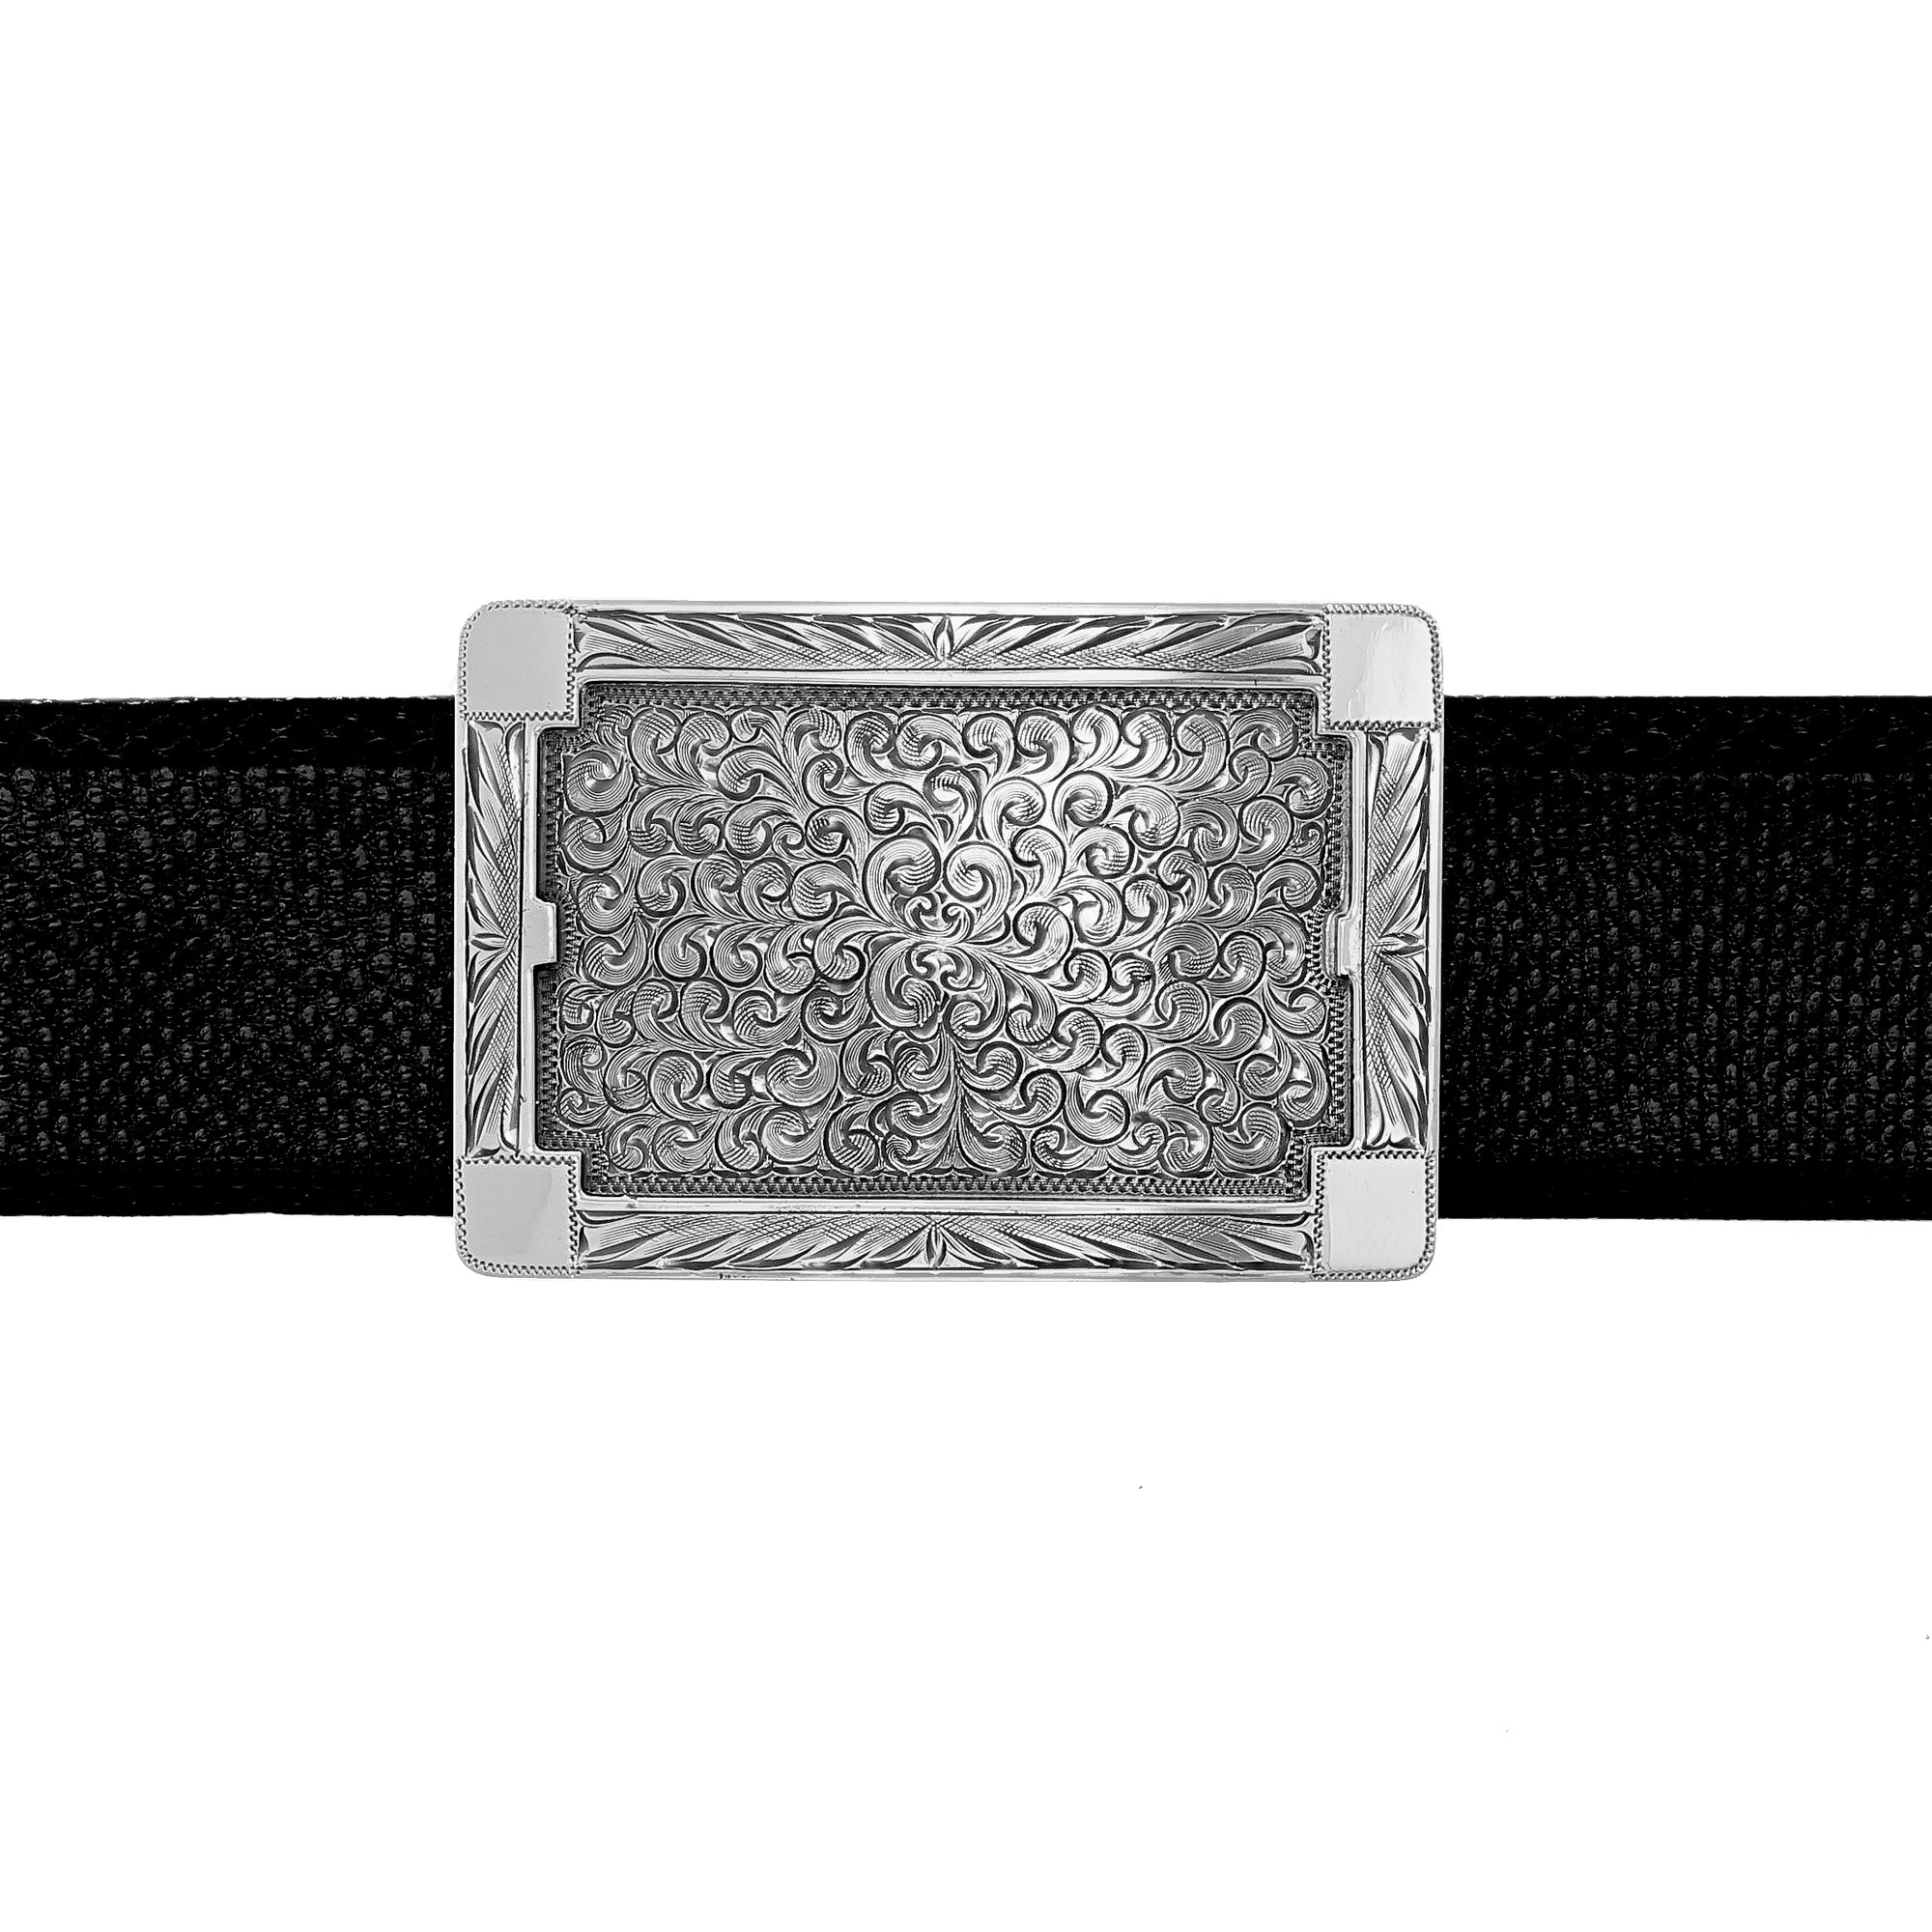 Martin 1800 Sterling Trophy Buckle